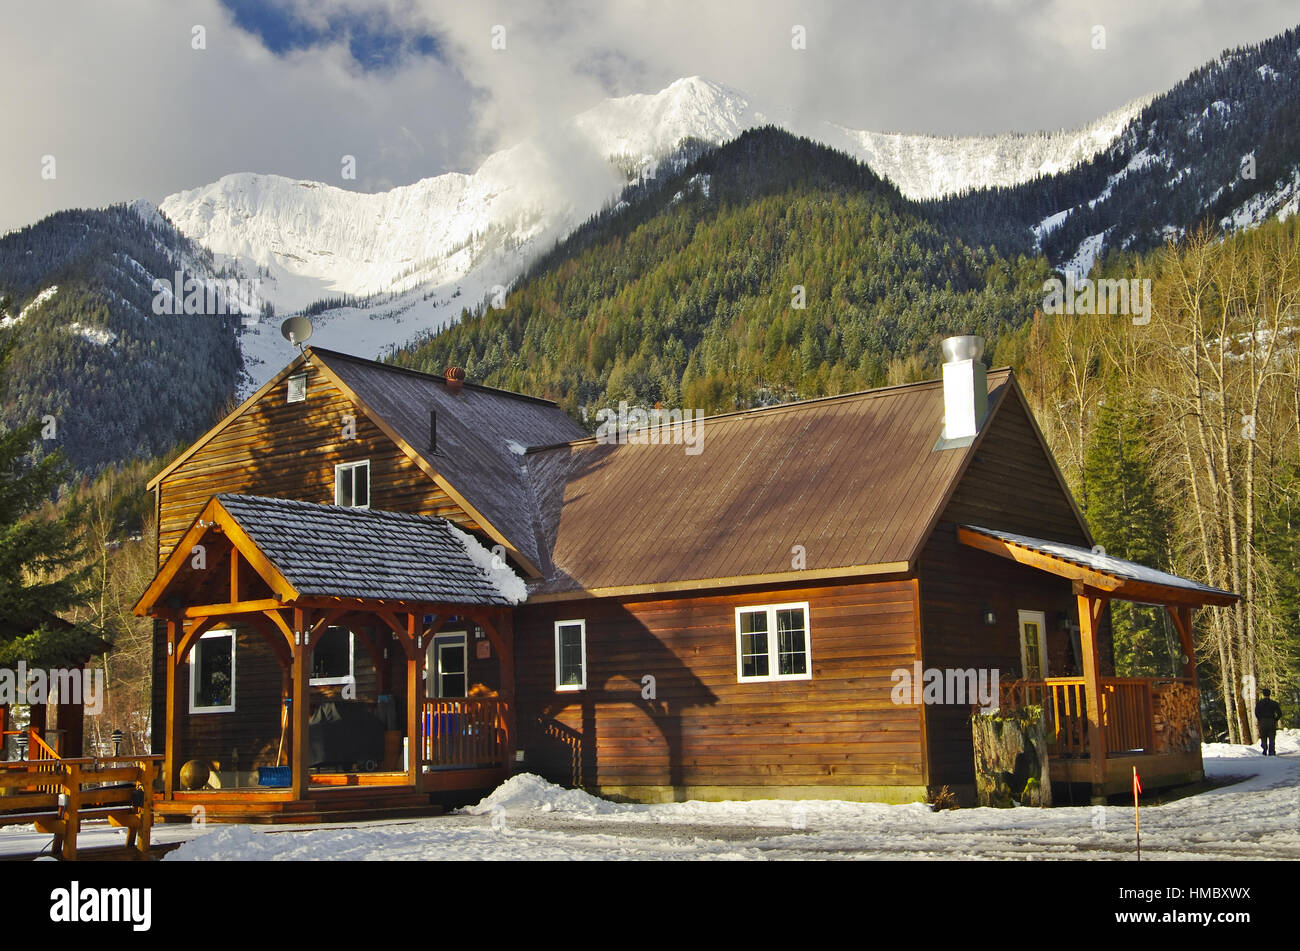 FERNIE, CA - CIRCA MARCH 2016 - Wooden cabin among snowy mountains. - Stock Image